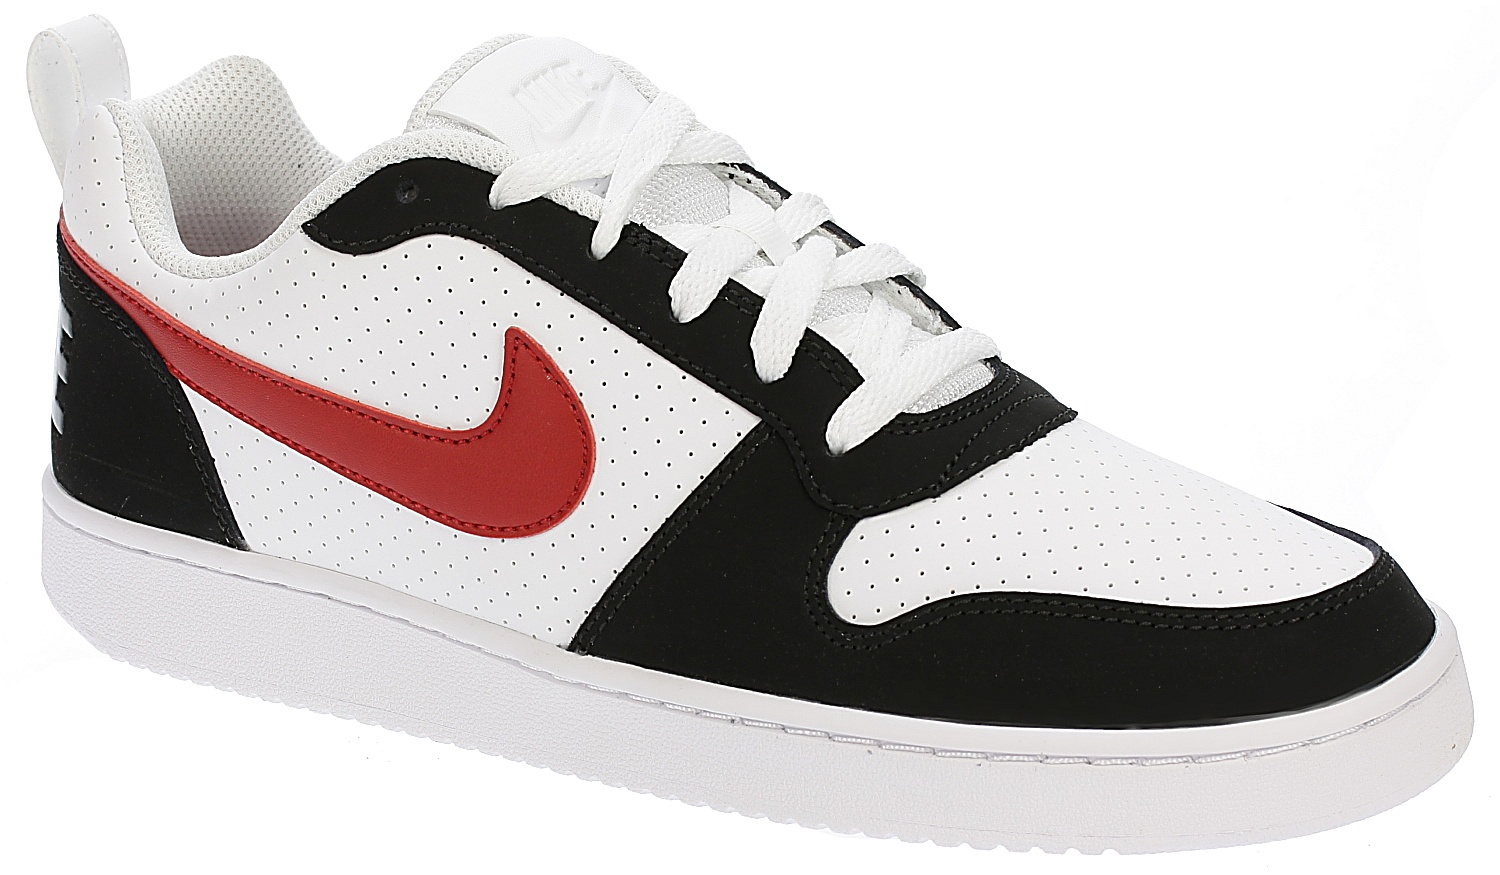 promo code b2c3e 7ca39 shoes Nike Court Borough Low - WhiteGym RedBlack - Snowboard shop,  skateshop - snowboard-online.eu